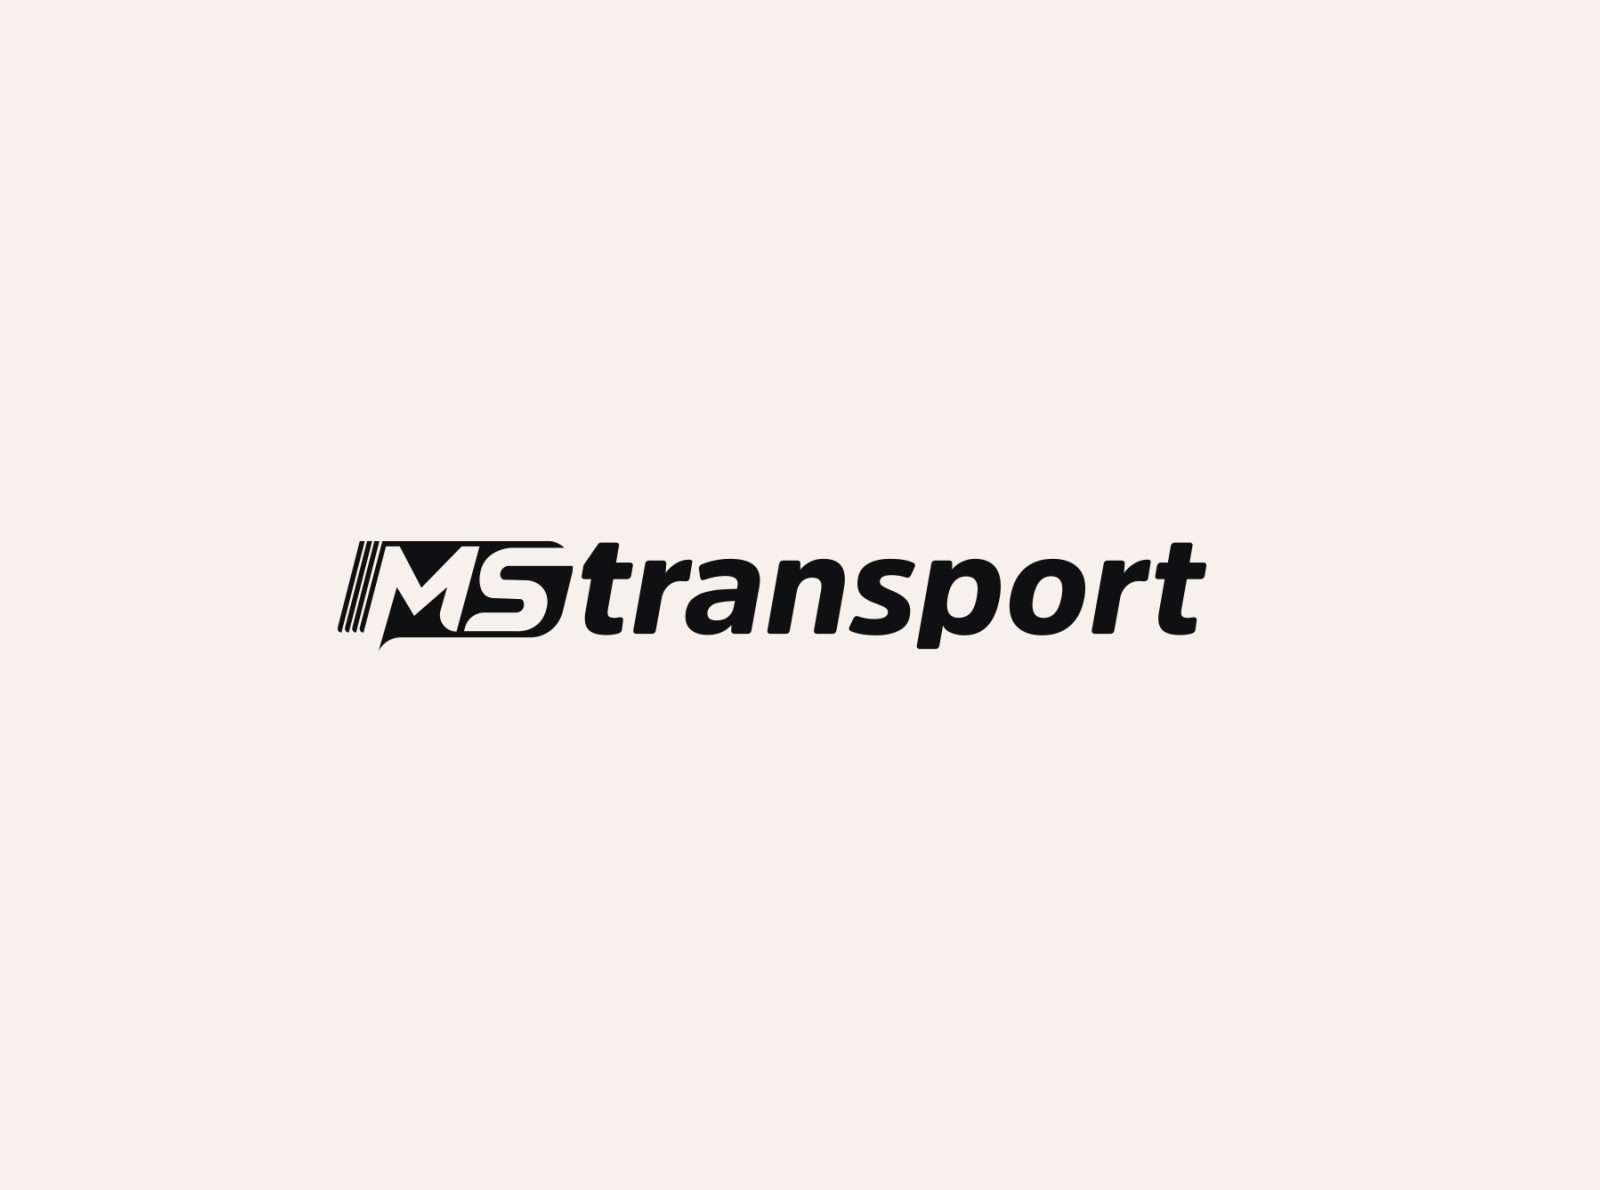 Ms Transport Logo By Rerdsystems On Dribbble,Best Mouse For Graphic Design